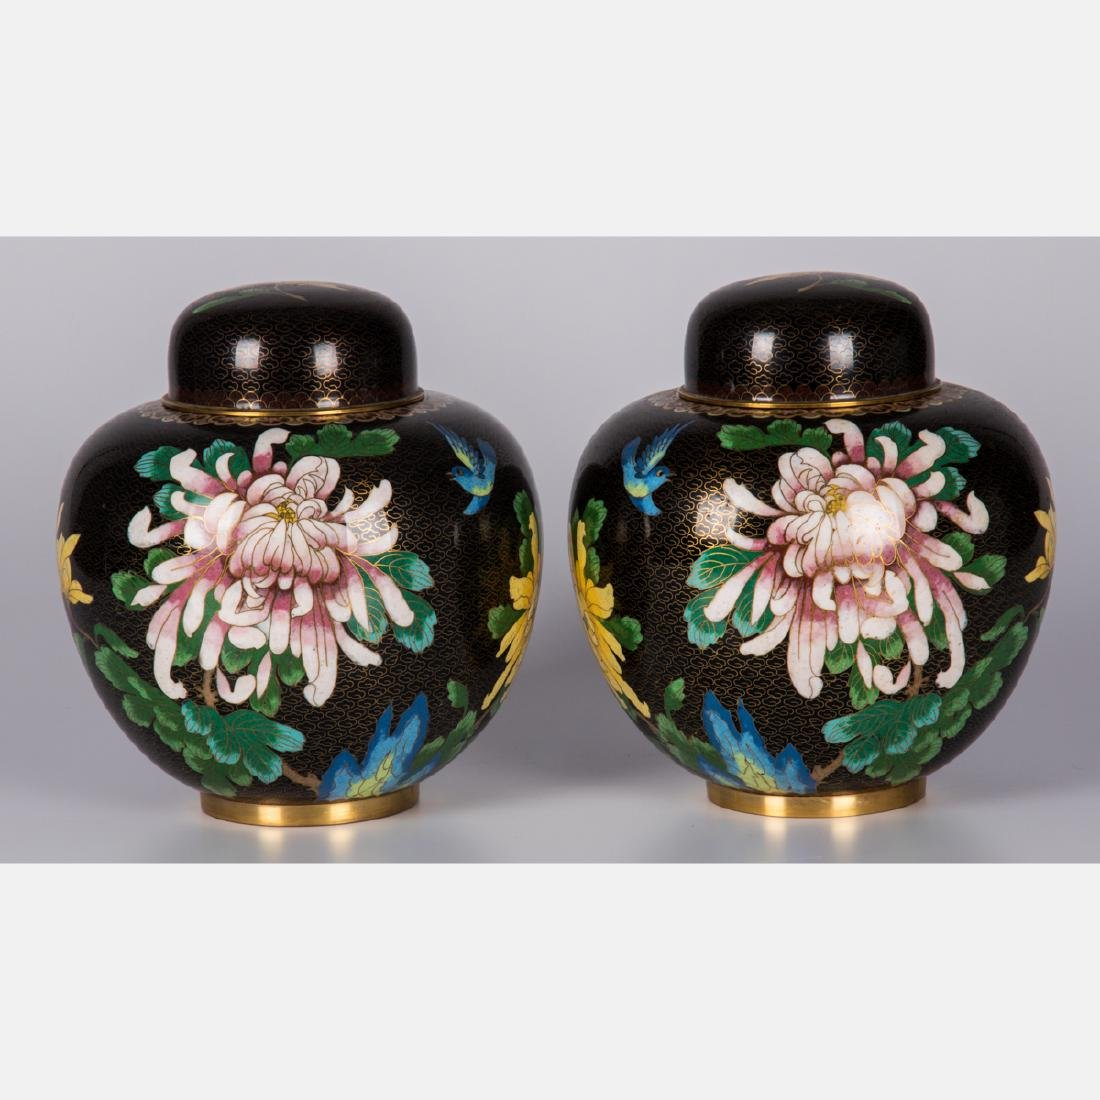 A Pair of Chinese Cloisonné Lidded Ginger Jars, 20th